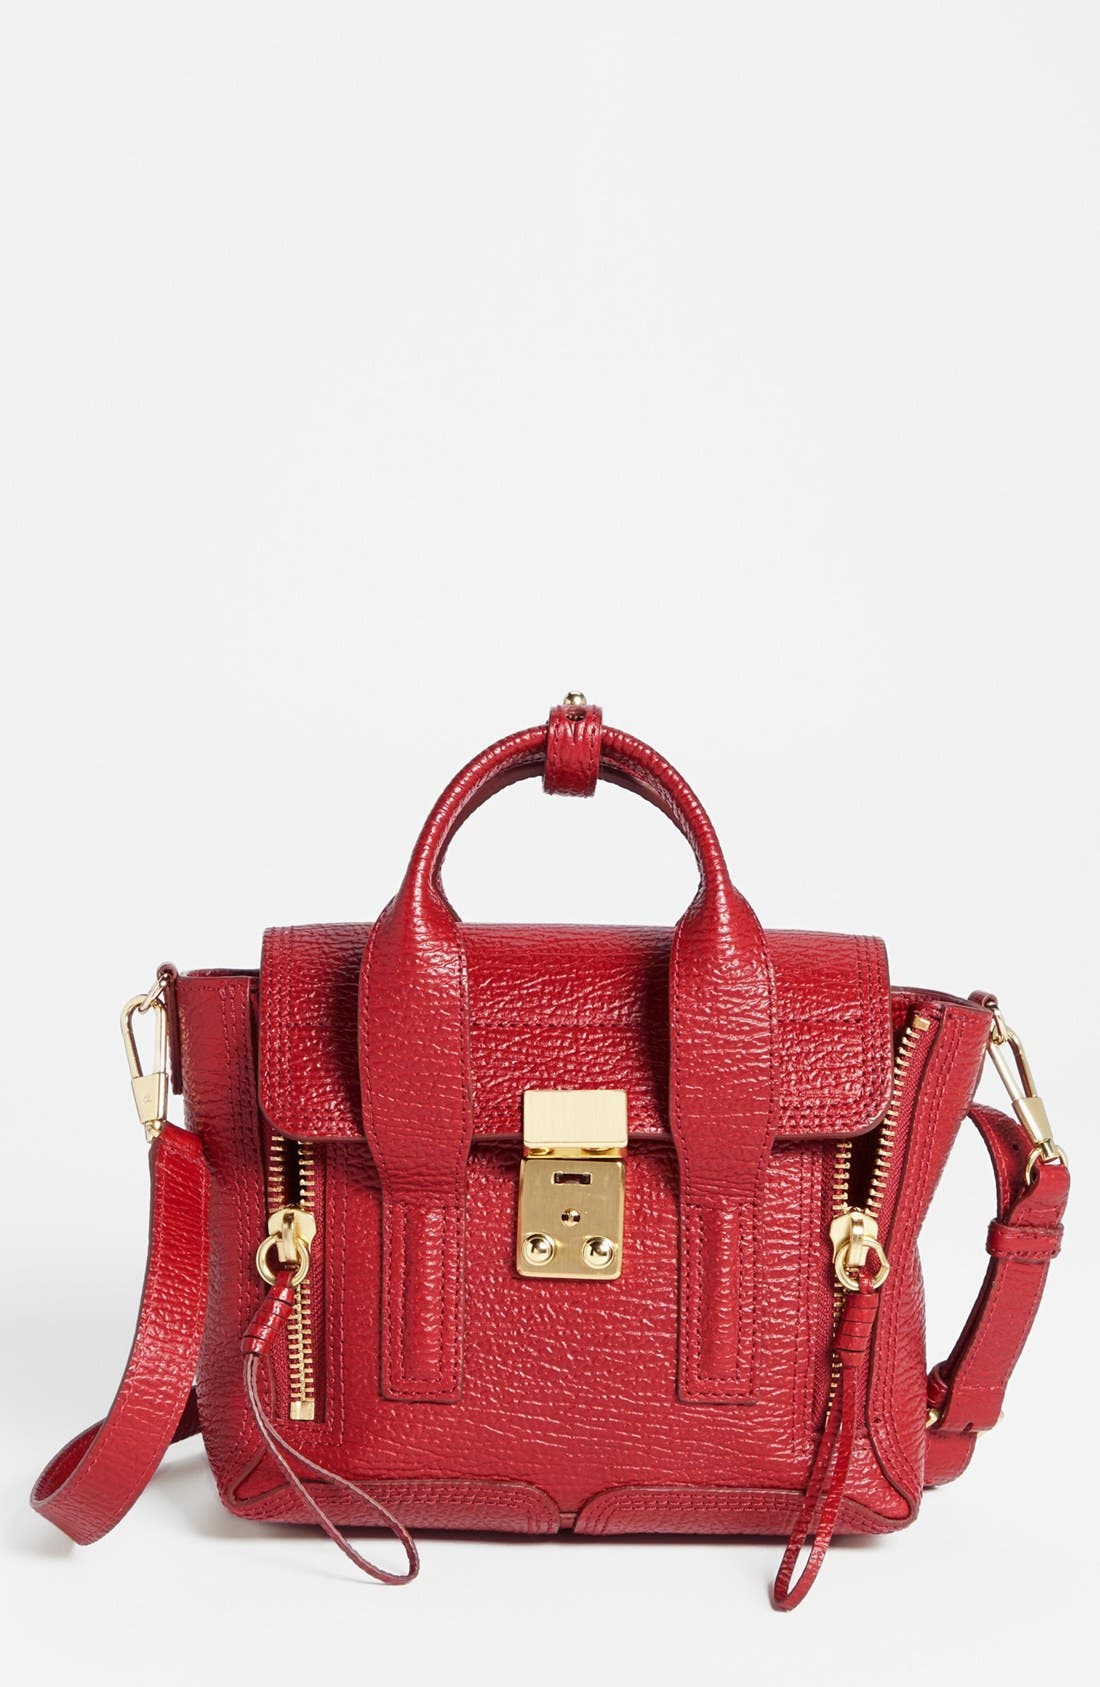 Alternate Image 1 Selected - 3.1 Phillip Lim 'Mini Pashli' Shark Embossed Leather Satchel